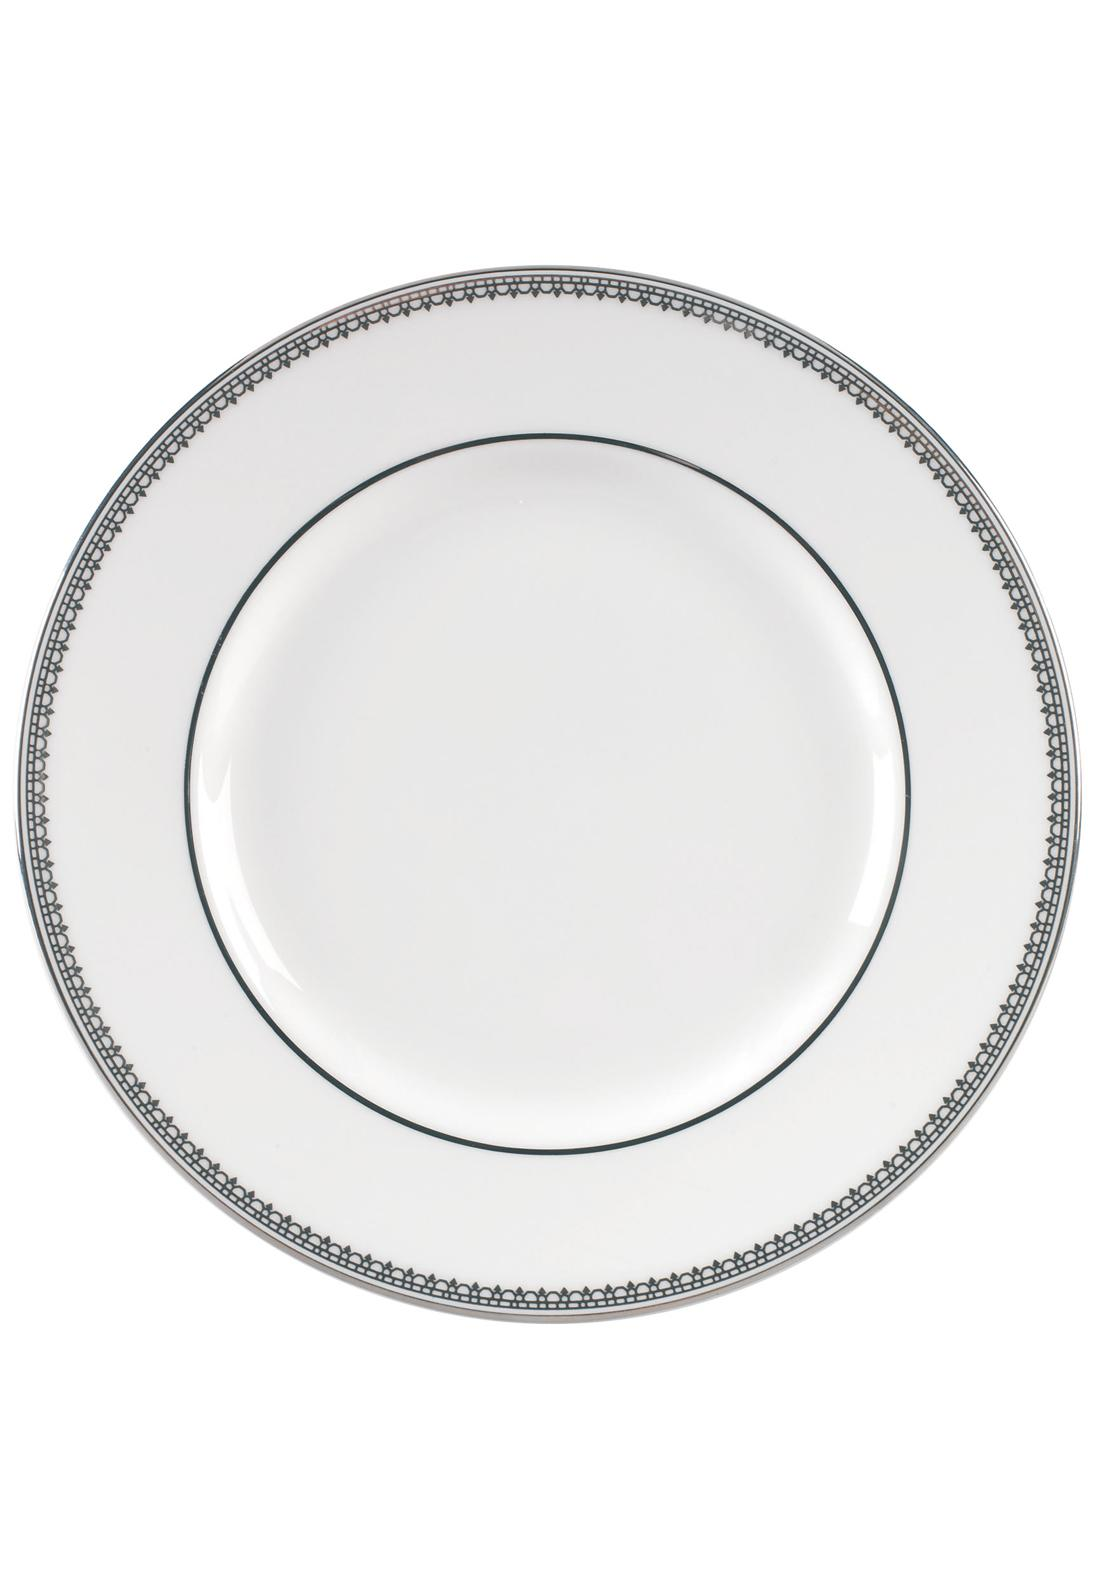 PLATE 8.0